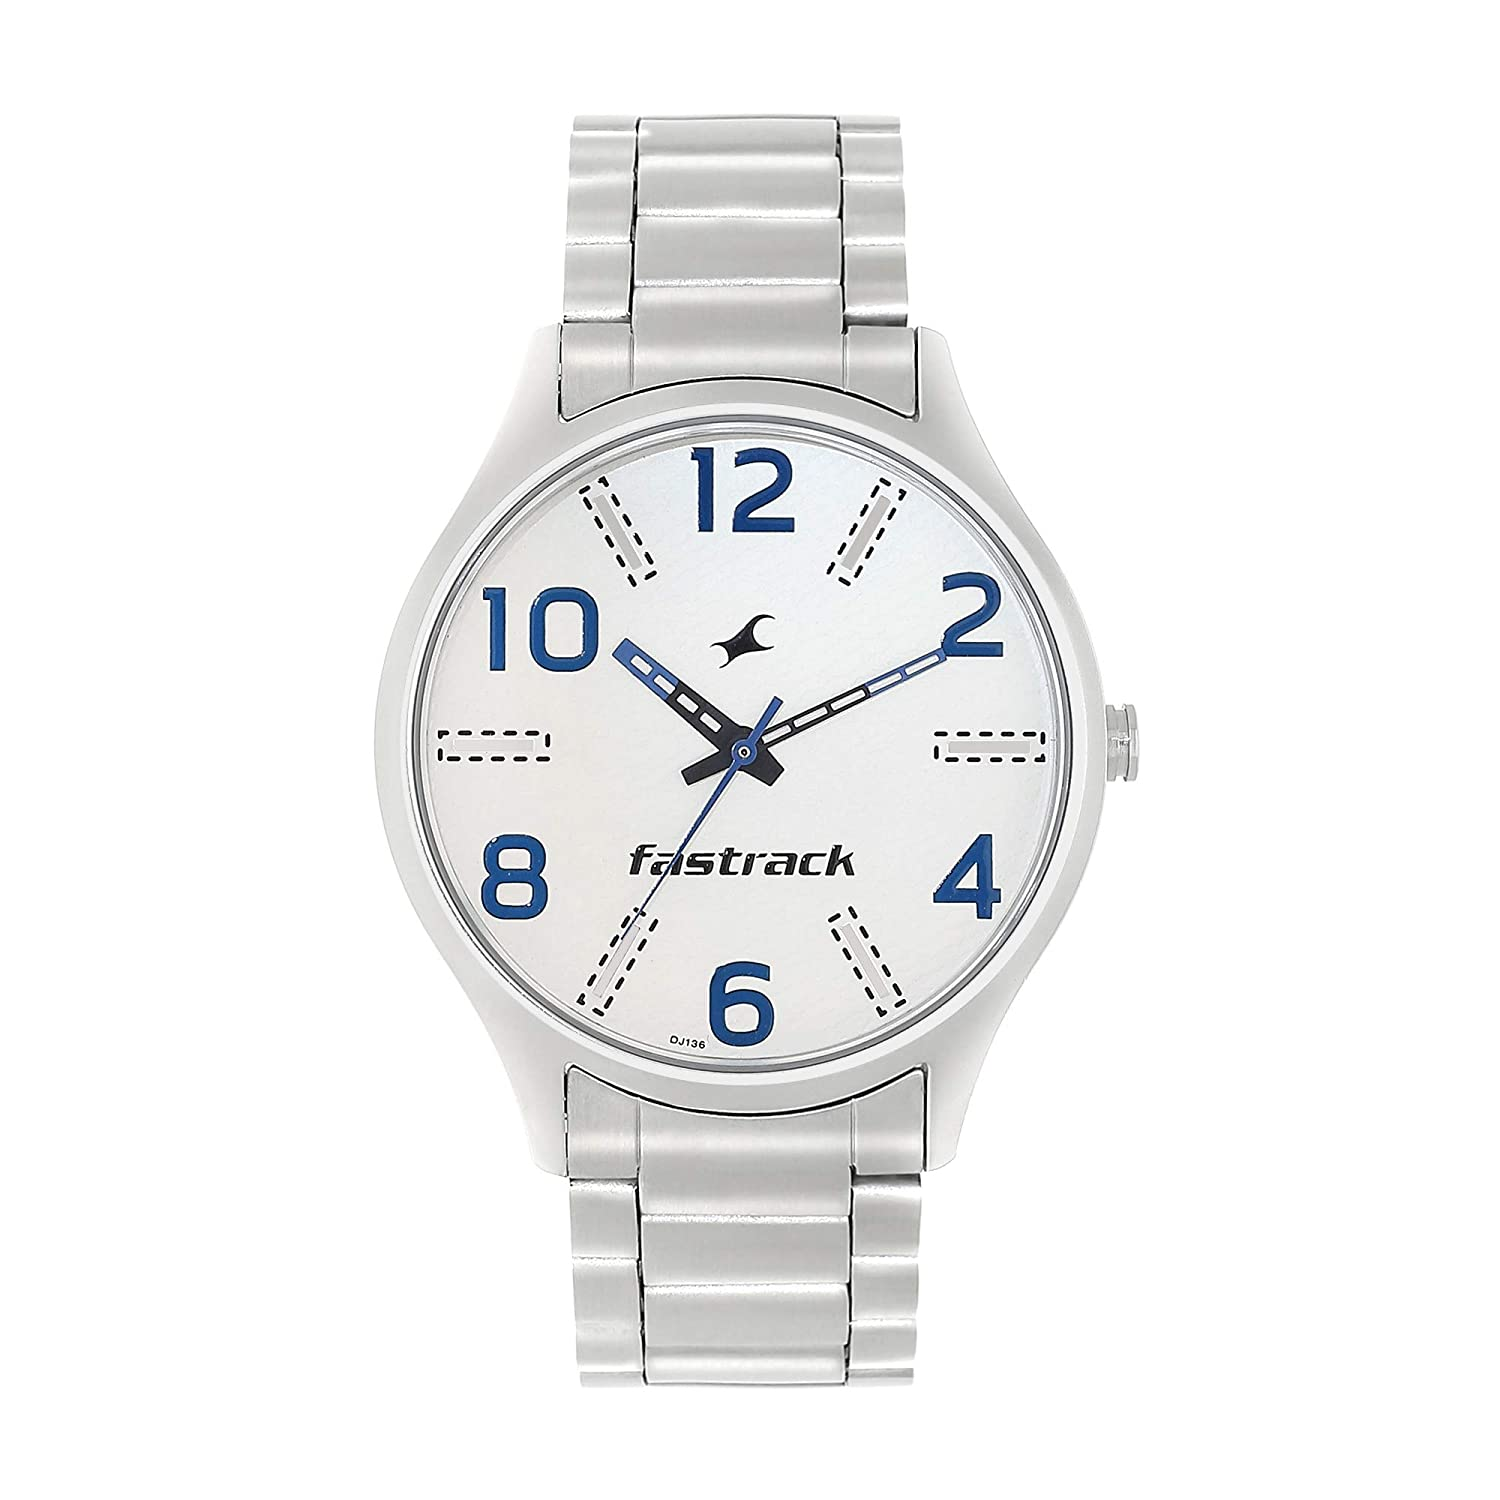 Fastrack Watches for men in the budget of around 3000 in India